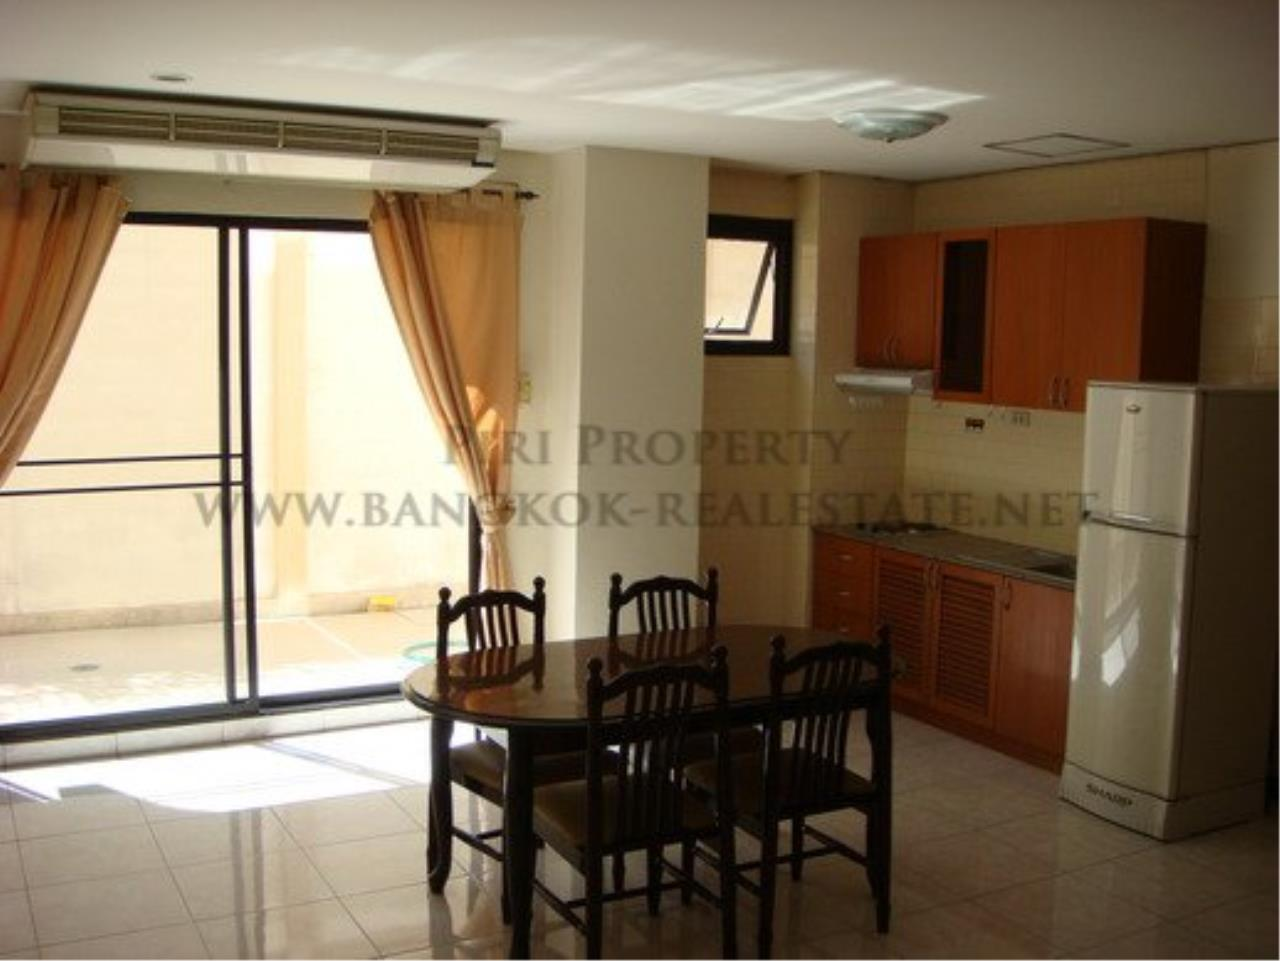 Piri Property Agency's Cheap Apartment in the heart of Asoke - 1 Bedroom - Very Spacious 1